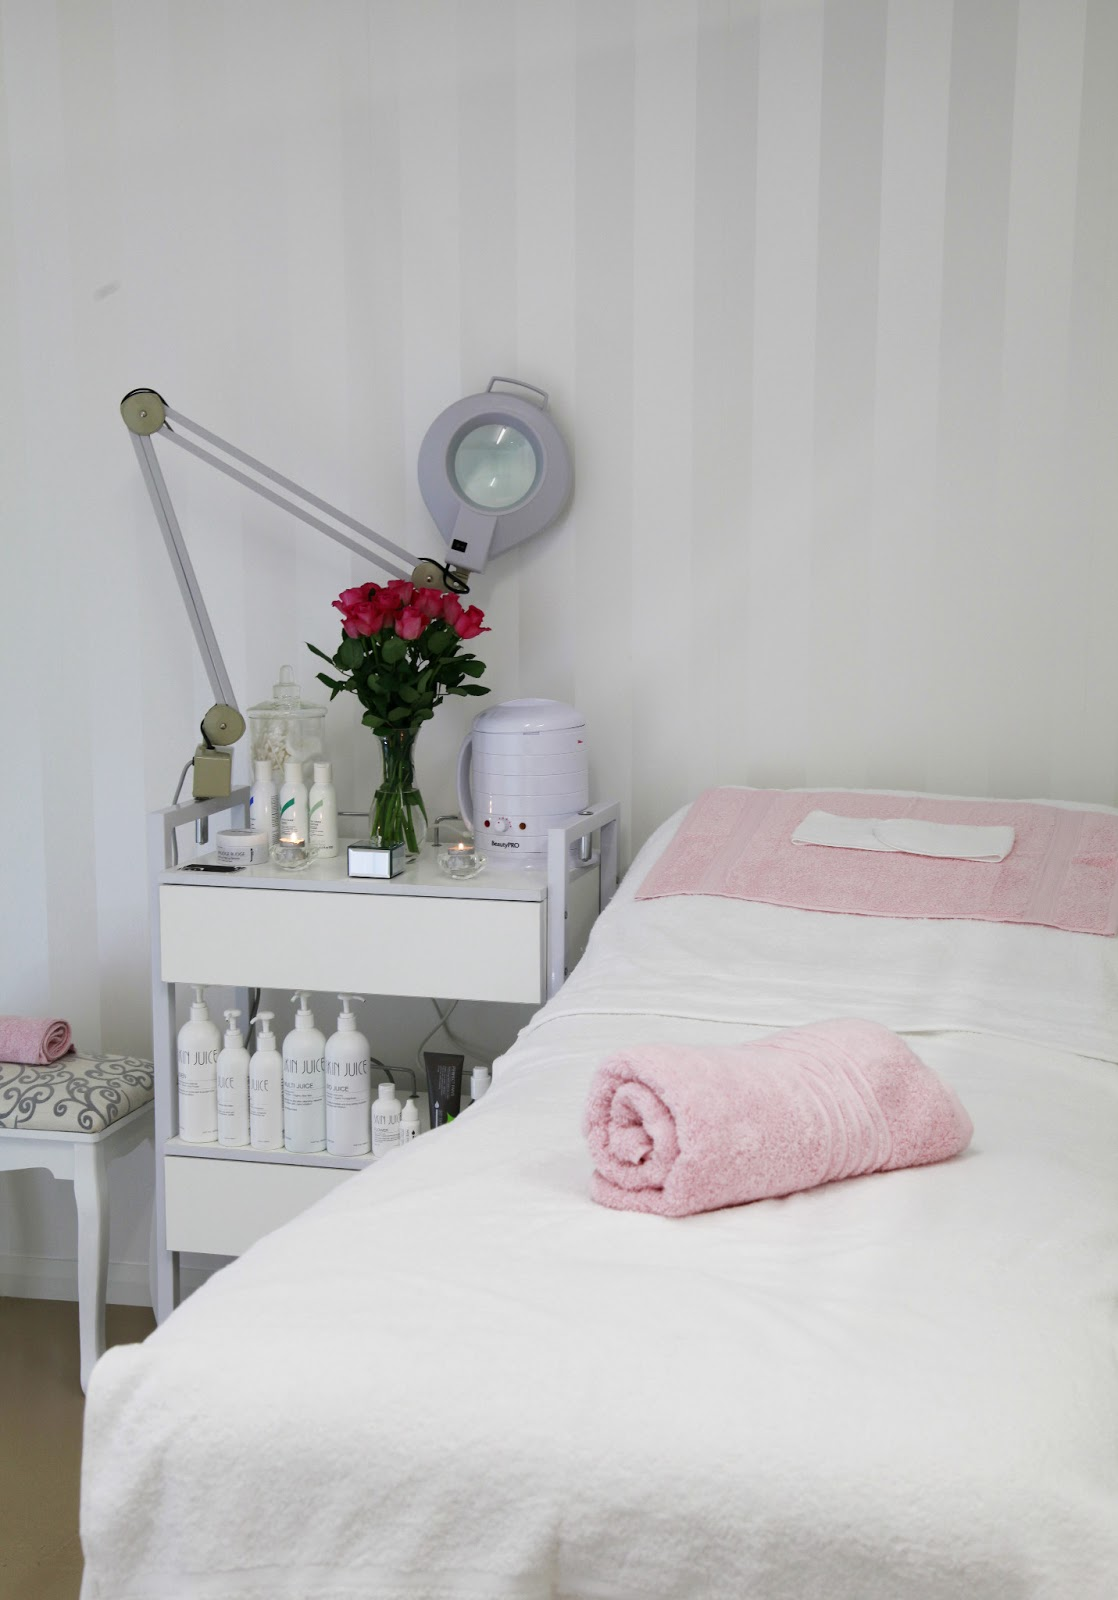 Home Spa Design Ideas: Pure Elegance - From Garage To Beauty Room